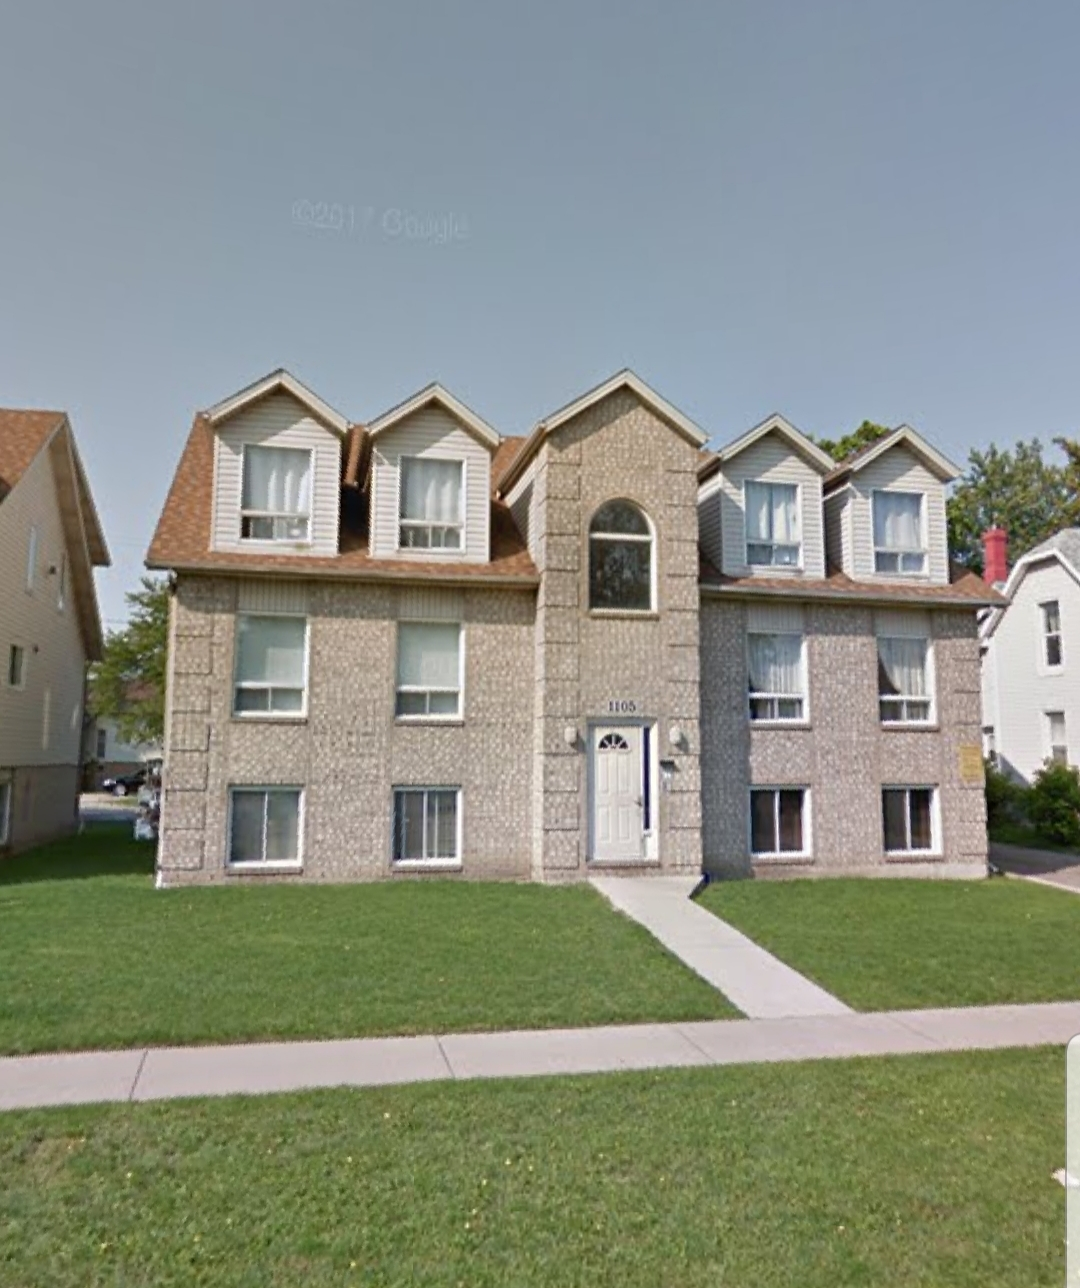 UPDATED 2nd FLOOR UNIT WITH 2 BEDROOMS IN DOWNTOWN WINDSOR